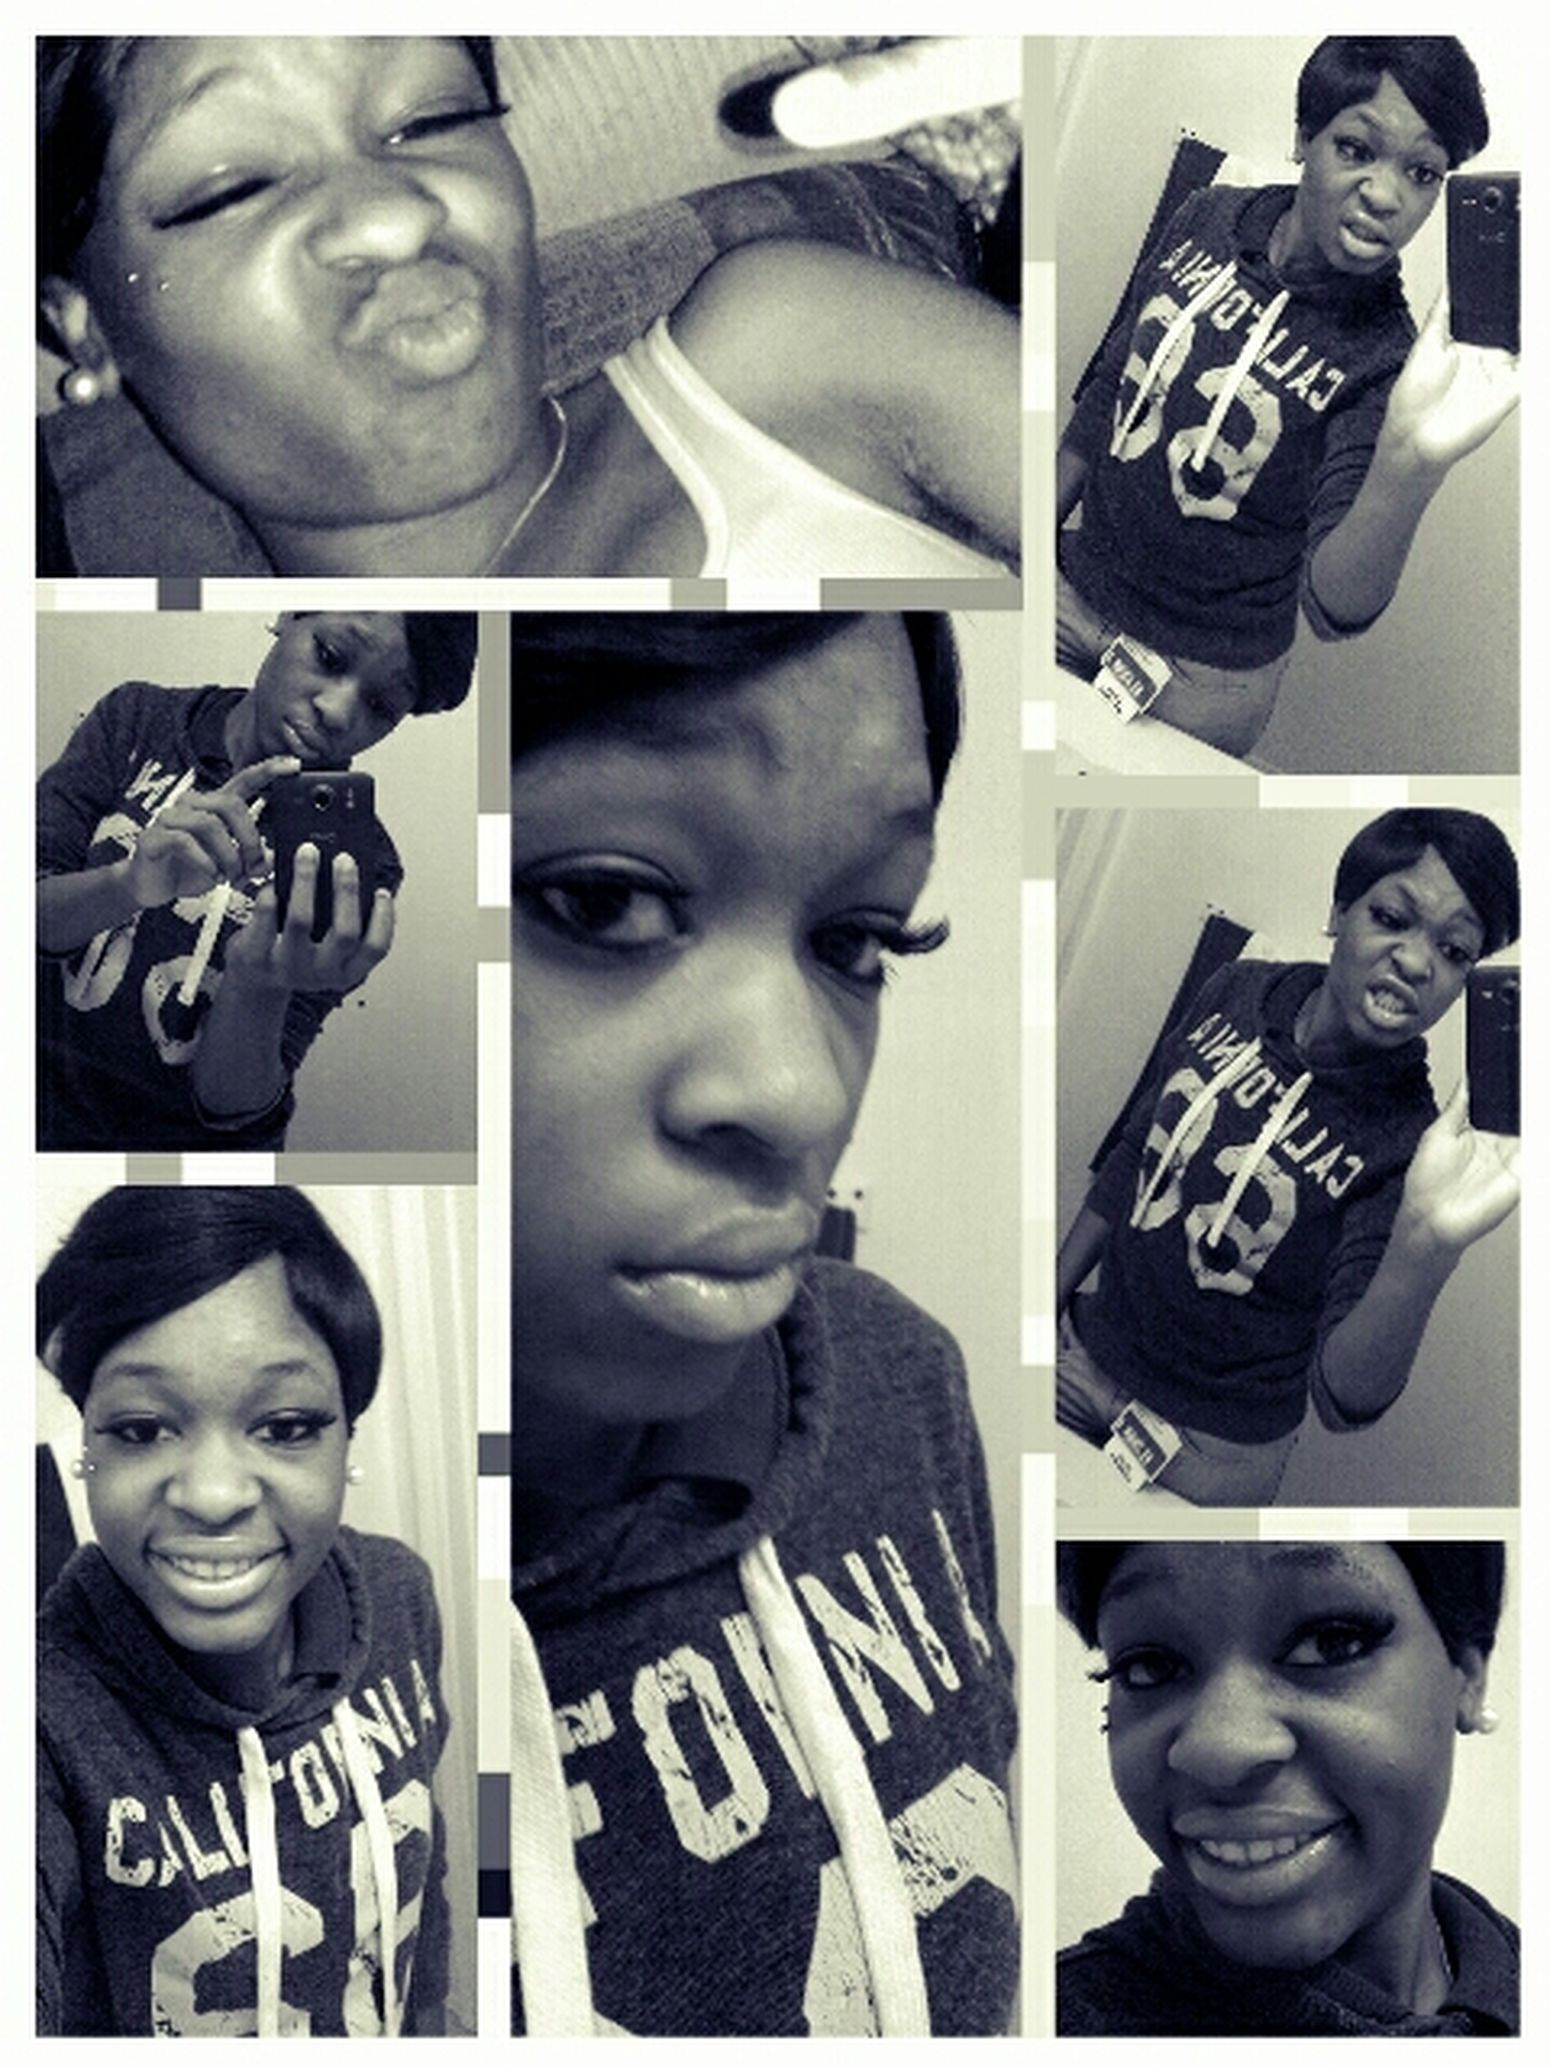 playing around befor I go to work $$$